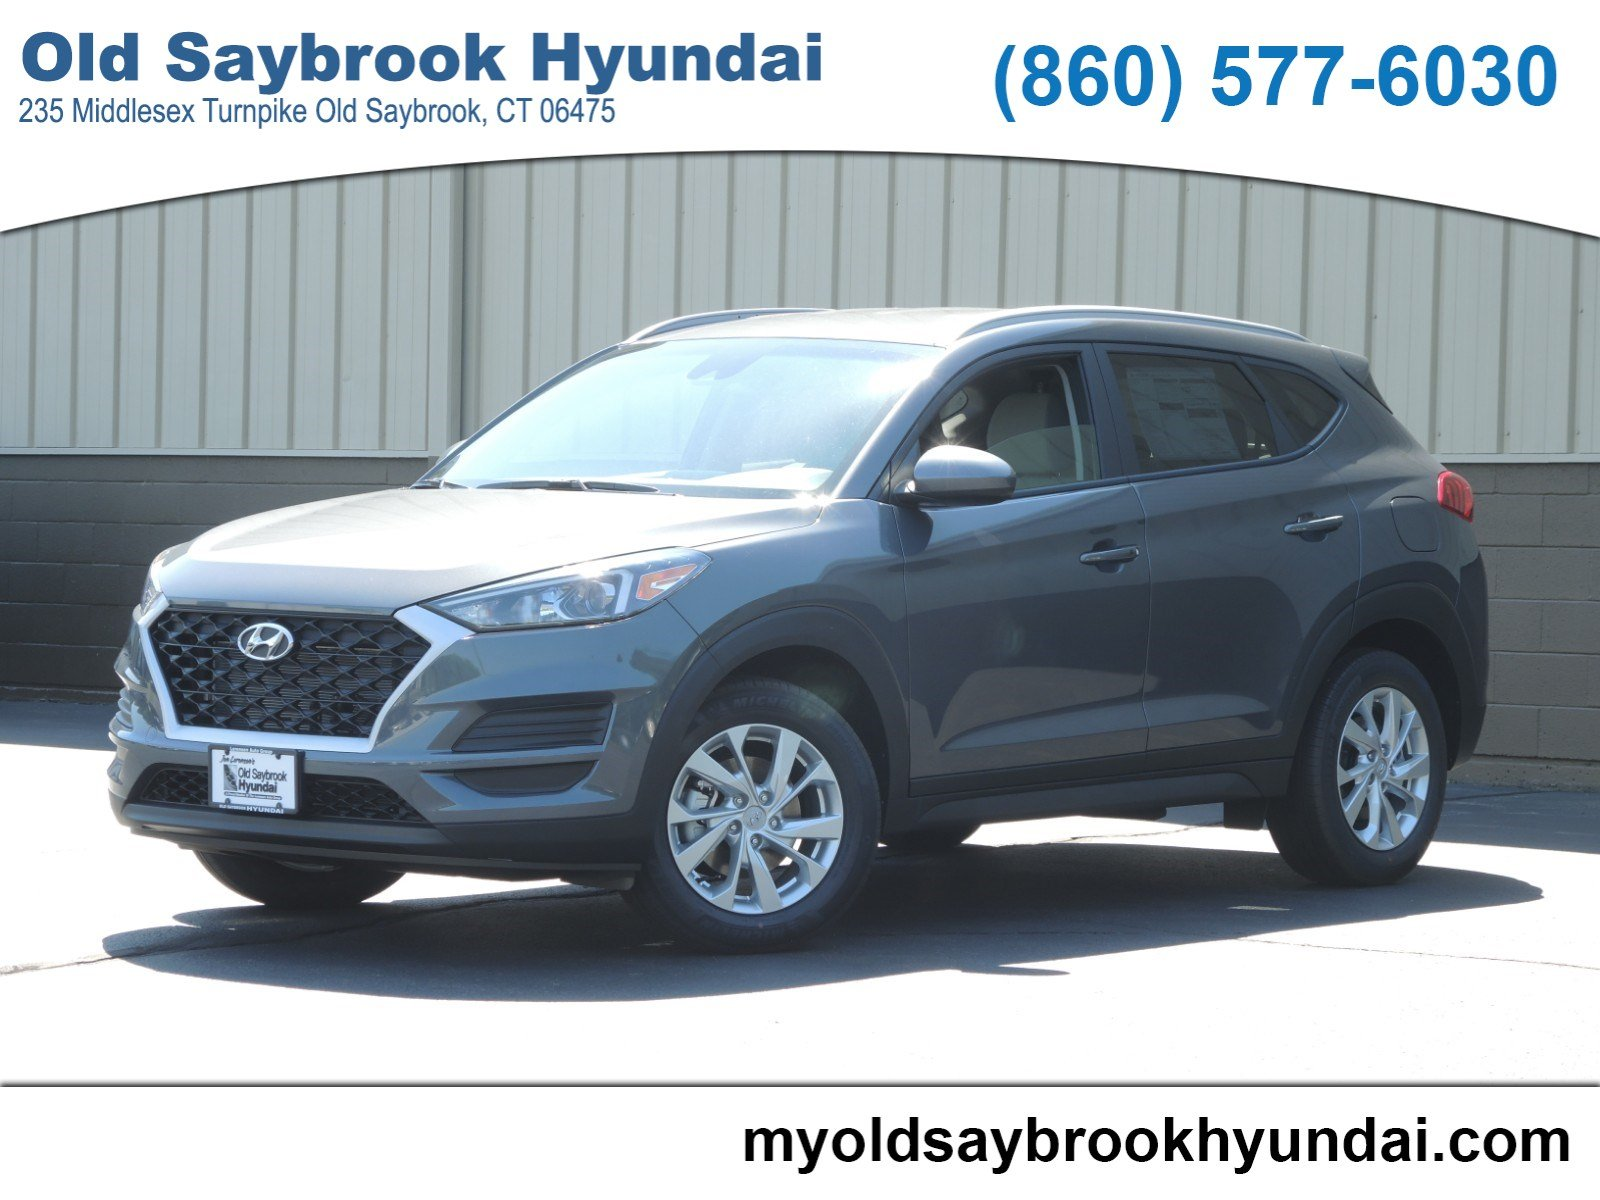 New 2019 Hyundai Tucson Value SUV for sale in Old Saybrook CT